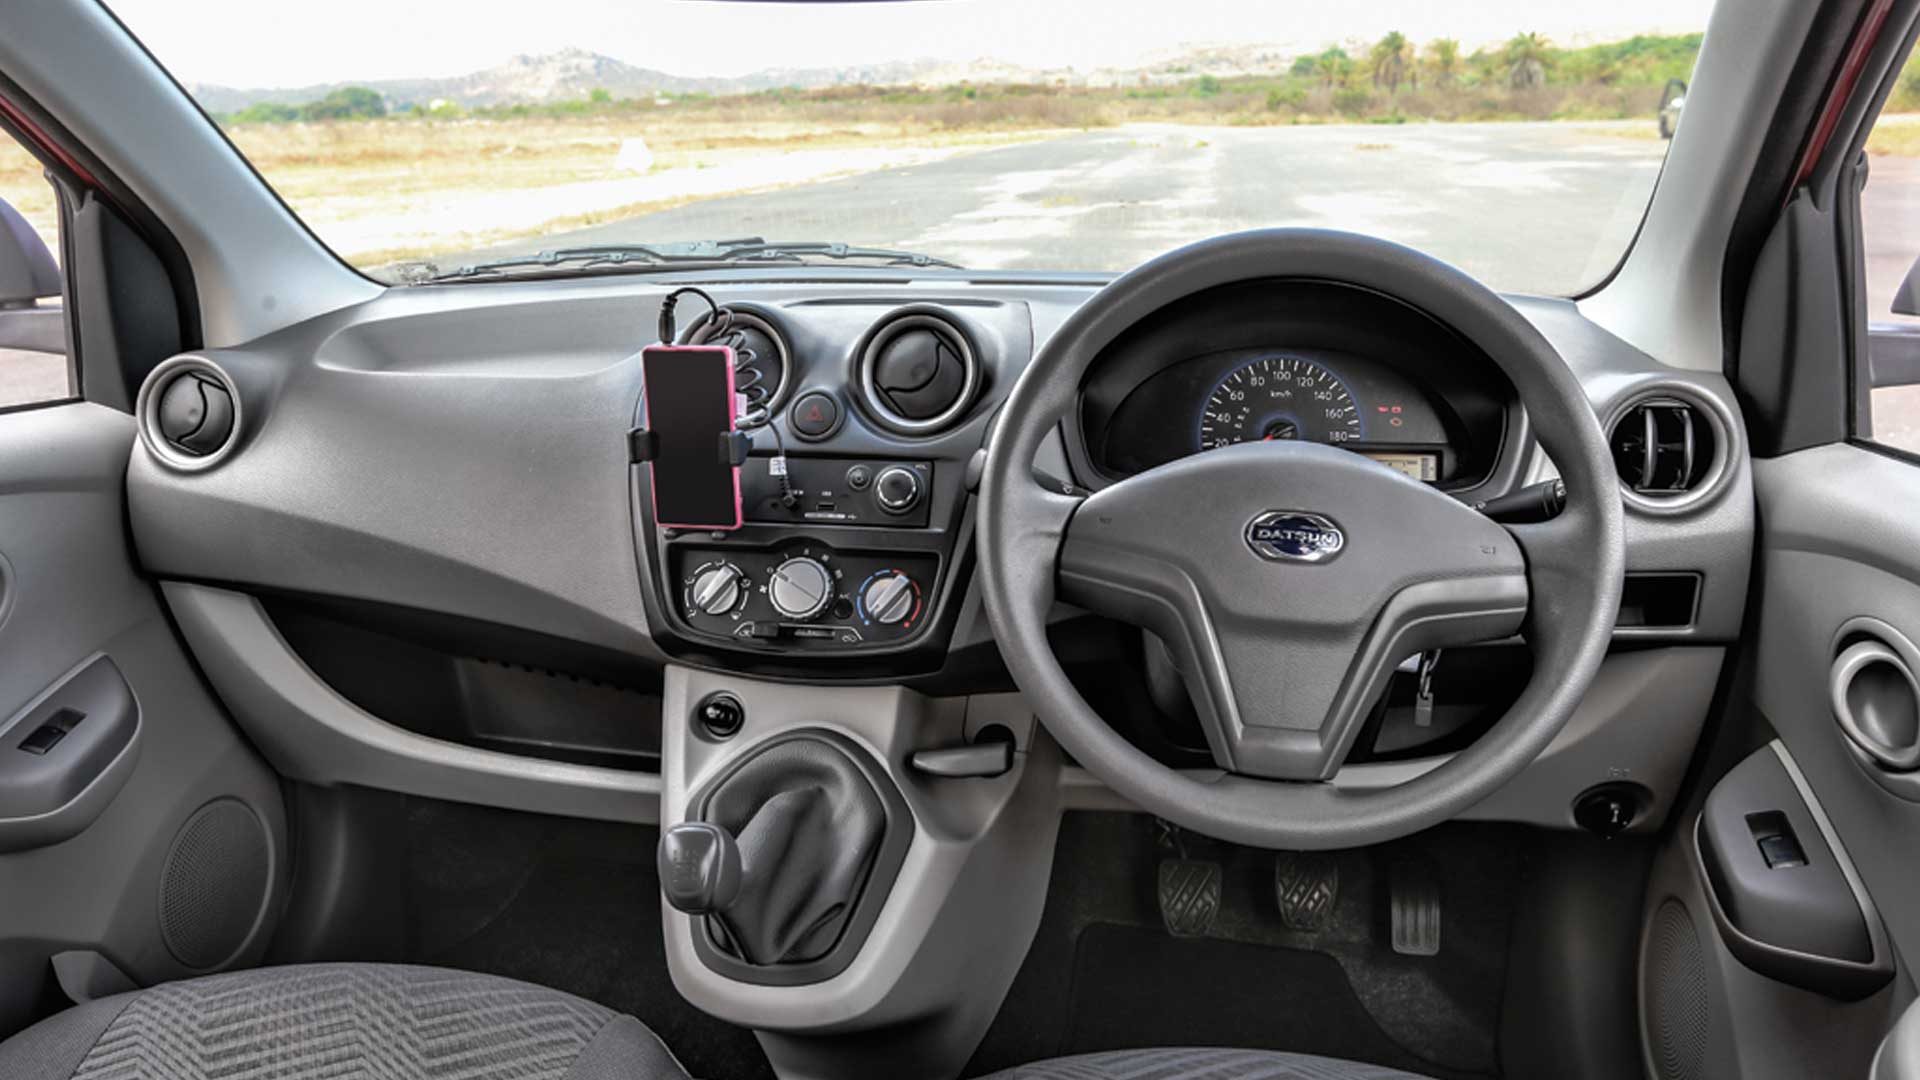 datsun go 2015 a eps price mileage reviews specification gallery overdrive. Black Bedroom Furniture Sets. Home Design Ideas